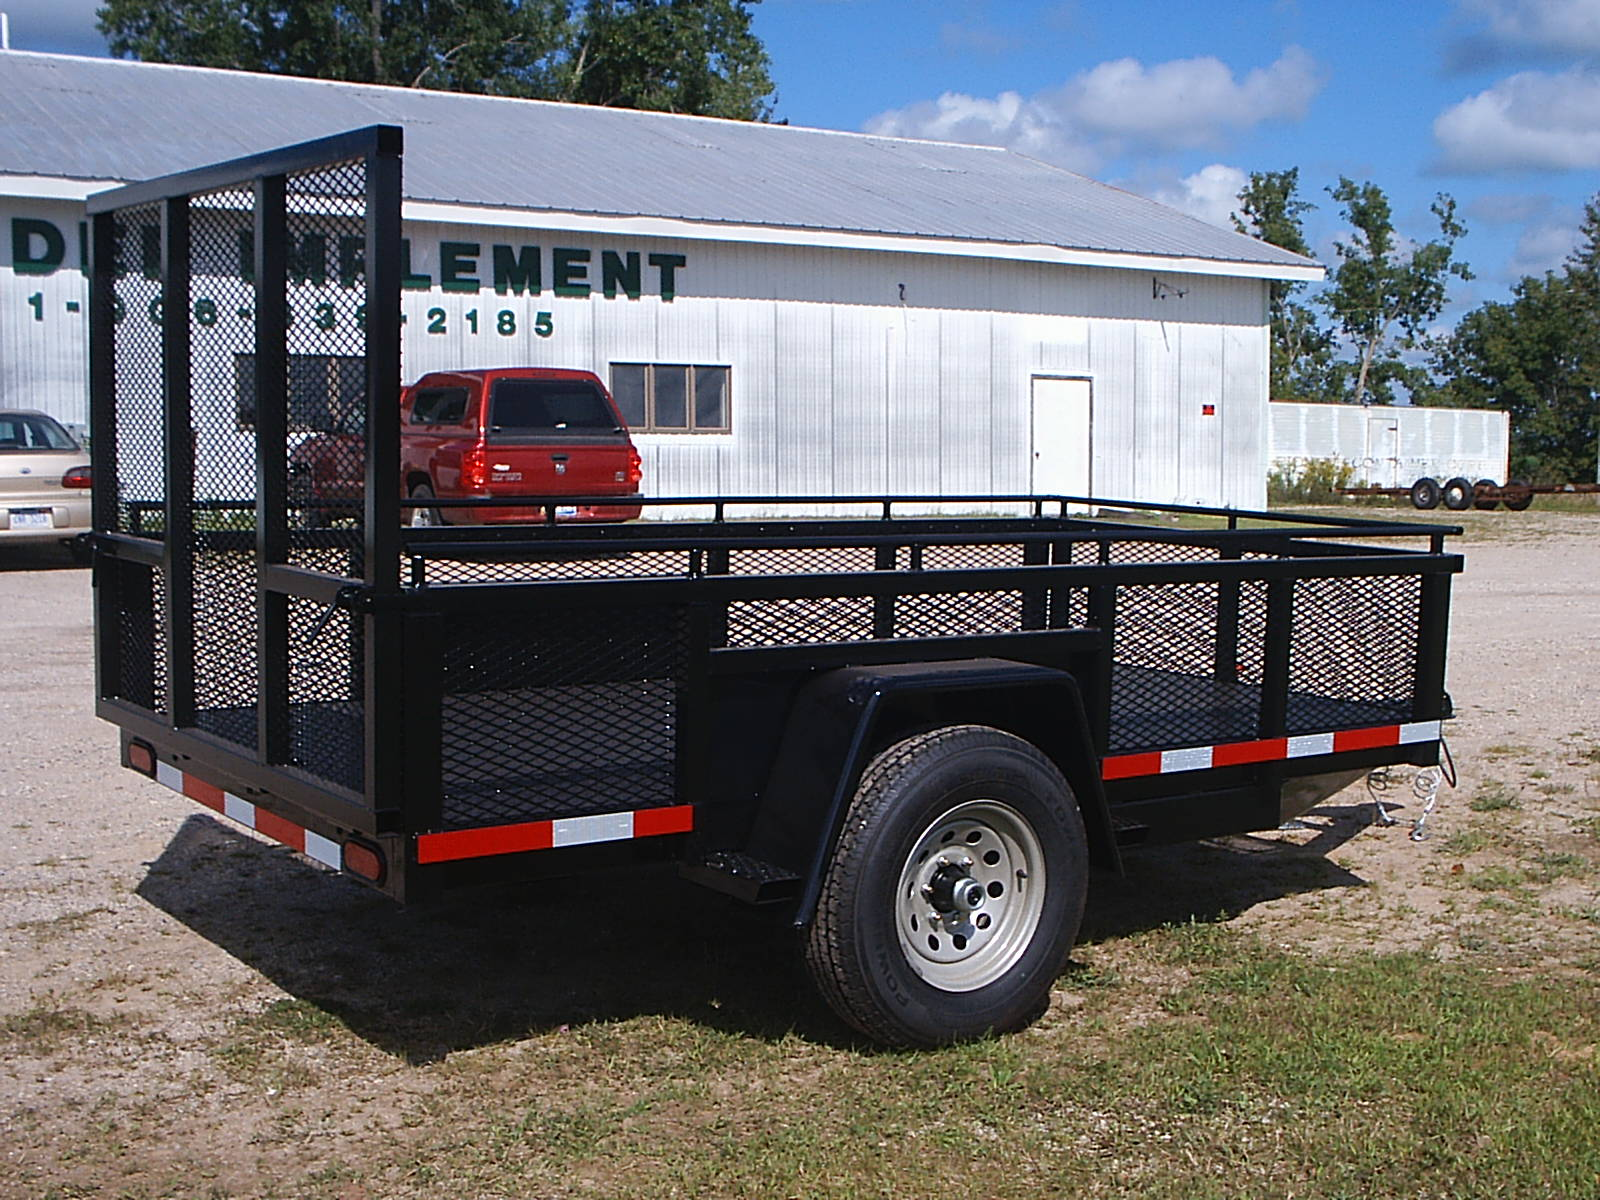 6' x 12' 18 inch mesh sides with 6,000 lb axles with full flip down ramp